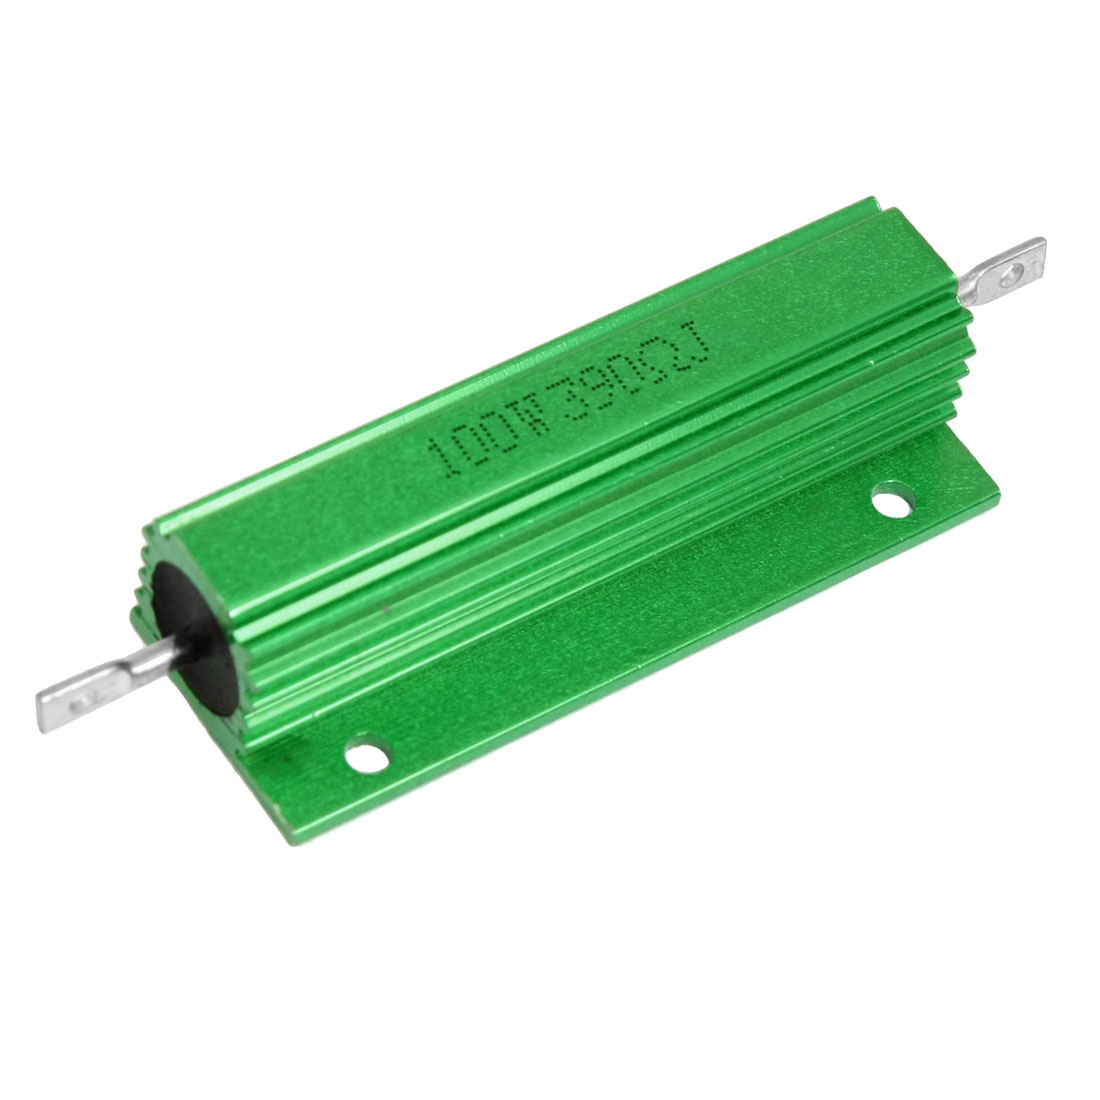 100W 390 Ohm Screw Tap Mounted Green Aluminum Housed Resistor